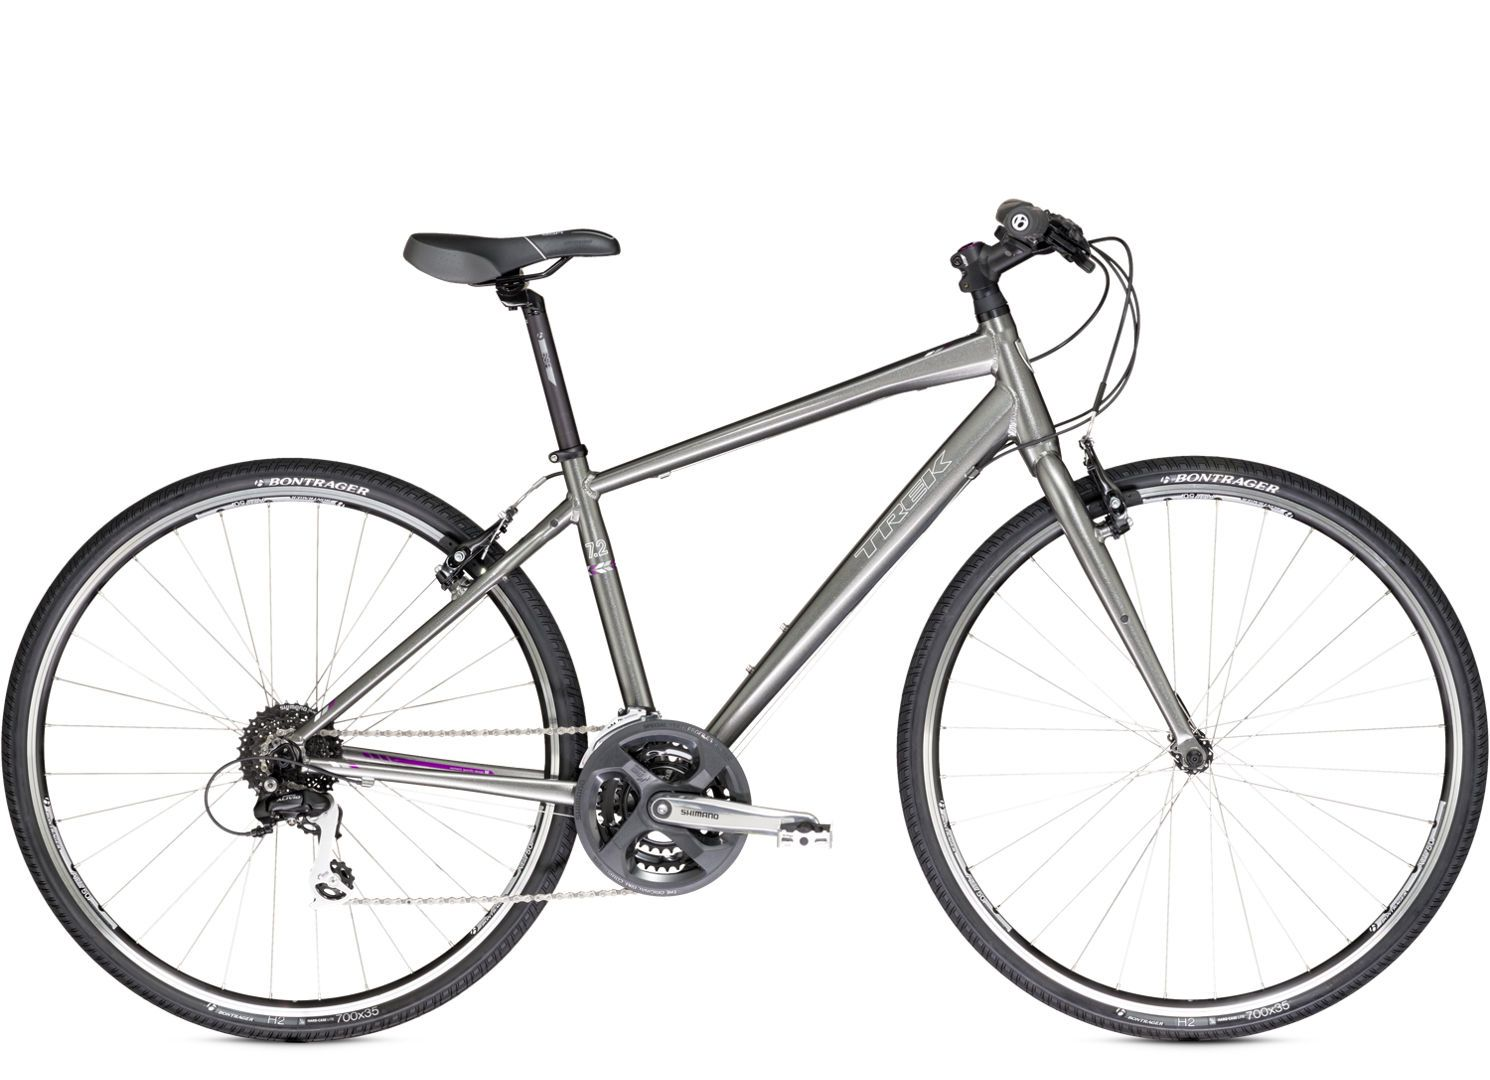 Fitness 7 2 Fx Wsd Fx Is Our Most Popular Bike With Good Reason It Offers A Best Of Both Worlds Combination Of Road Trek Bicycle Trek Bikes Biking Workout